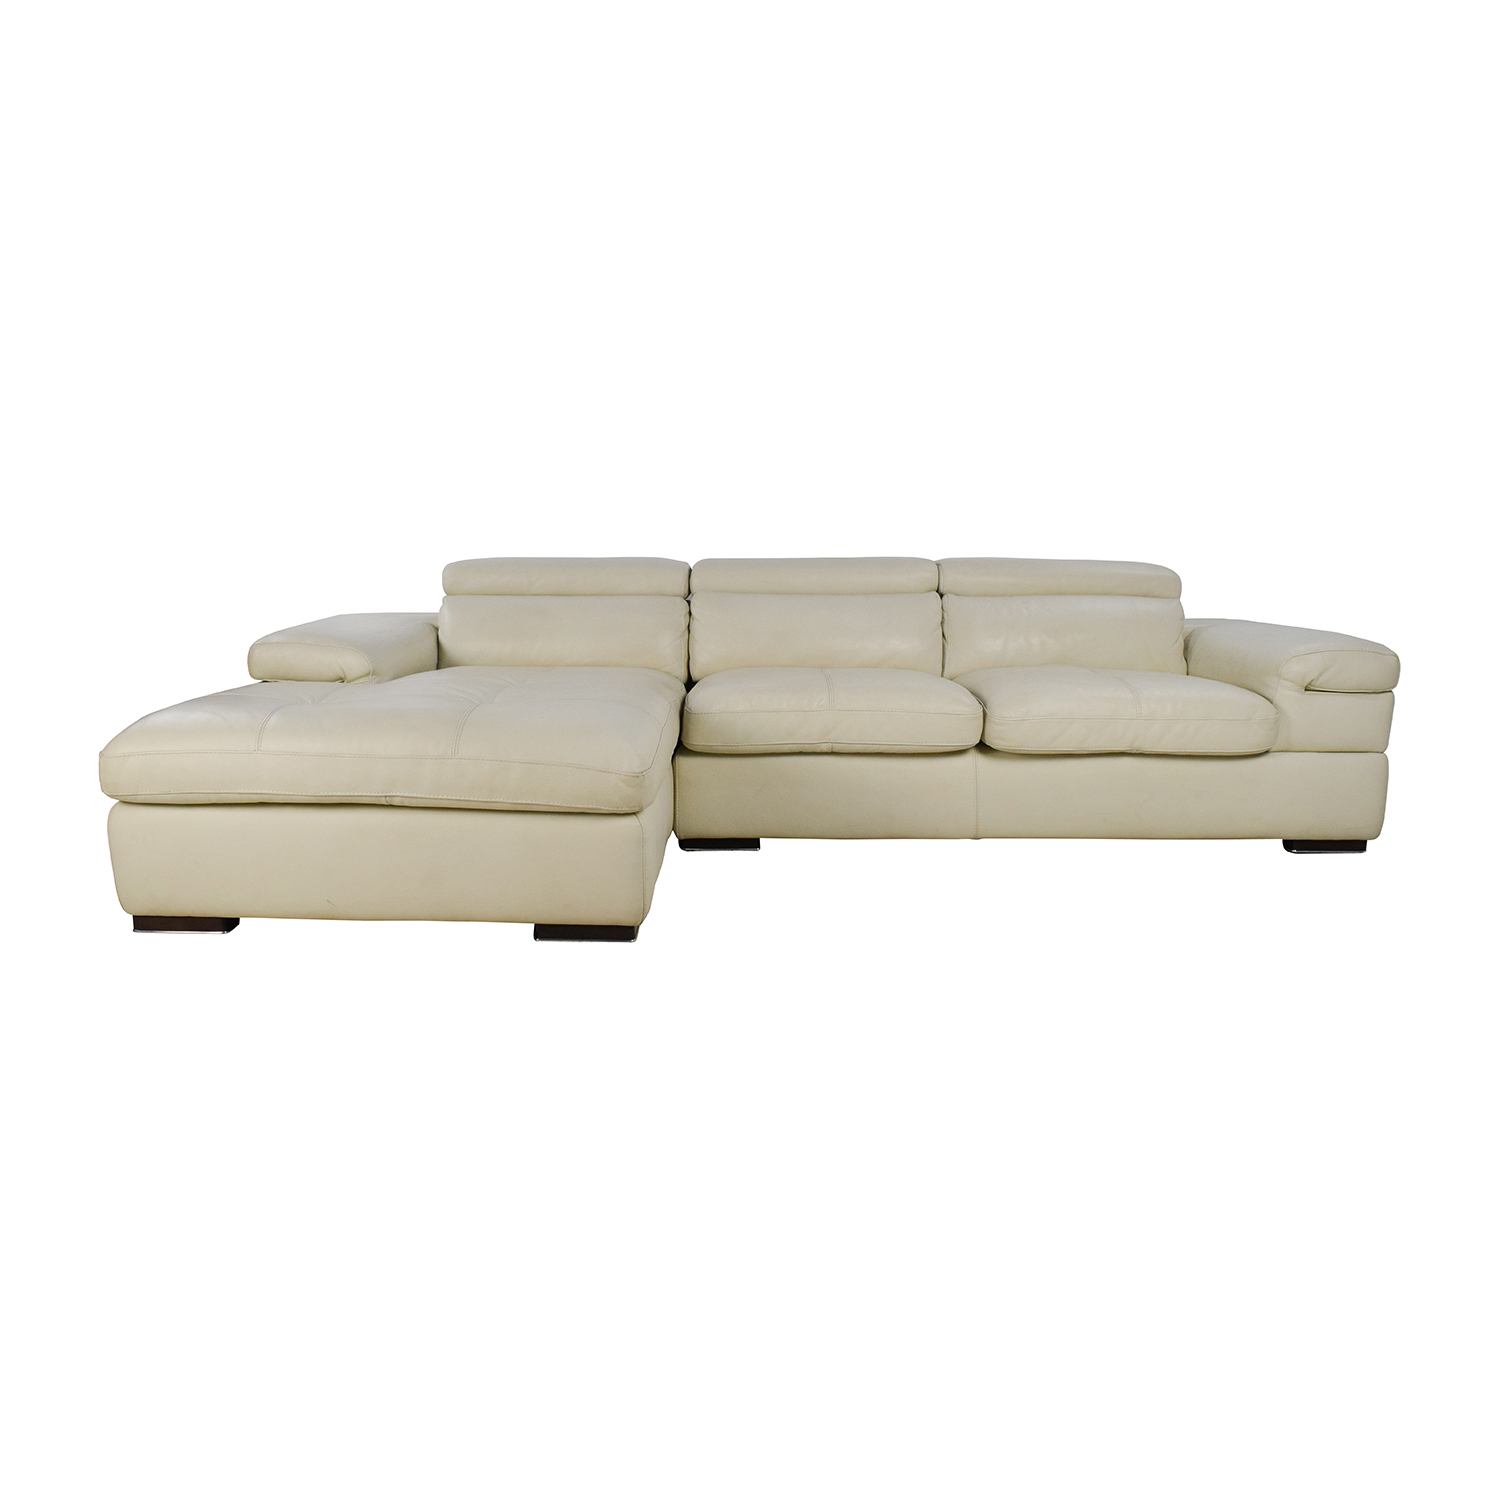 69% OFF - L-Shaped Cream Leather Sectional Sofa / Sofas